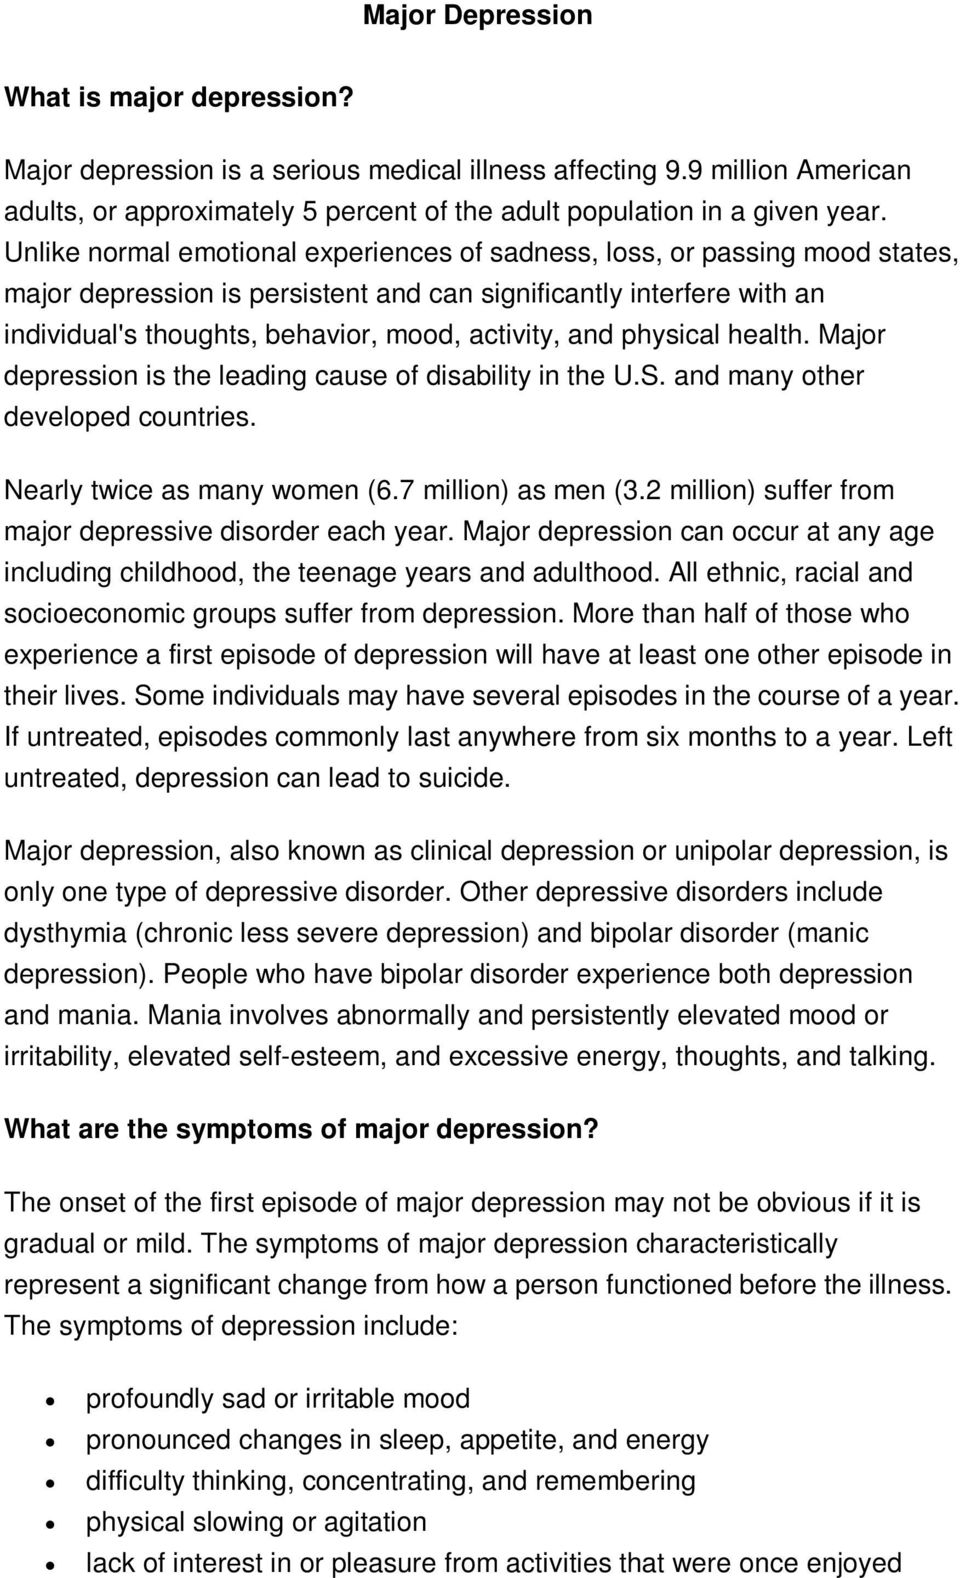 and physical health. Major depression is the leading cause of disability in the U.S. and many other developed countries. Nearly twice as many women (6.7 million) as men (3.